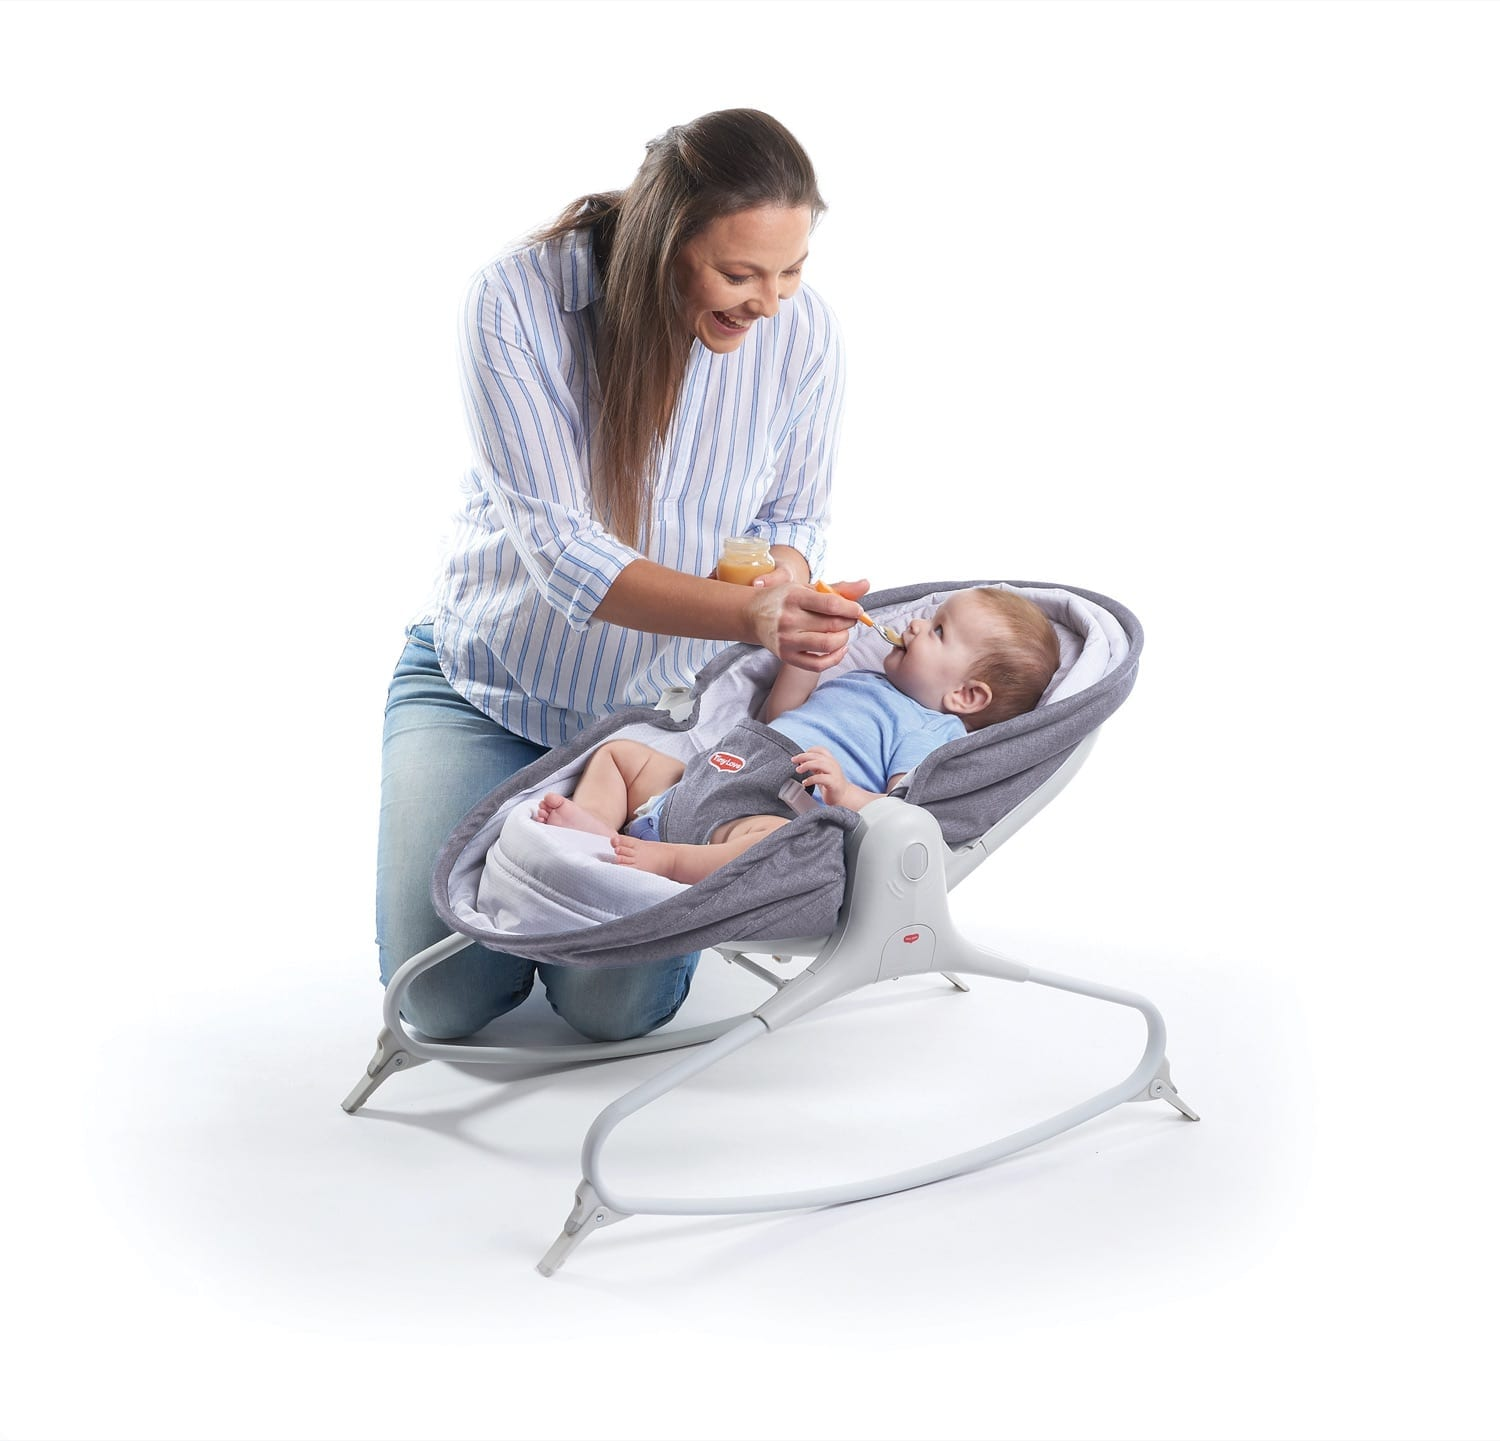 Tiny Love – 3 in 1 Rocker napper product image